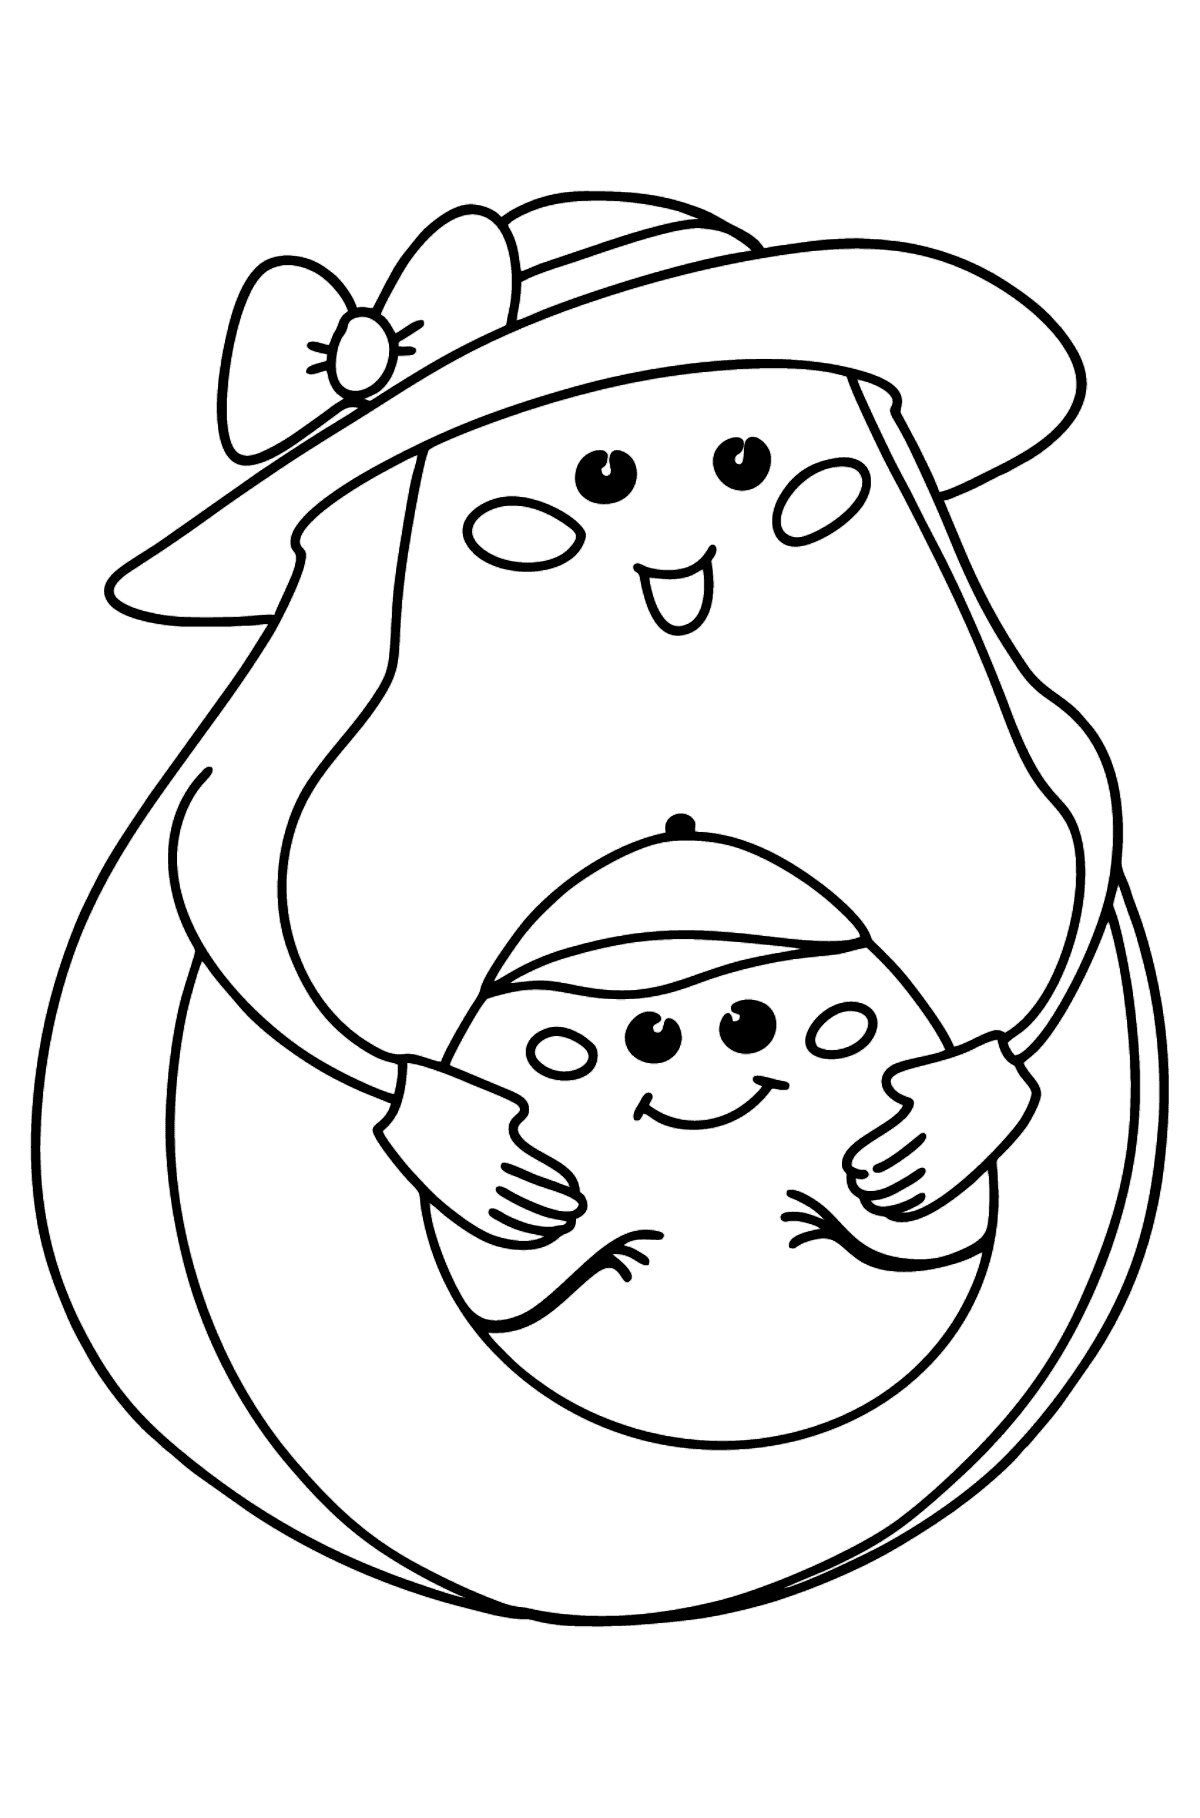 Avocado Mom with Baby coloring page - Coloring Pages for Kids